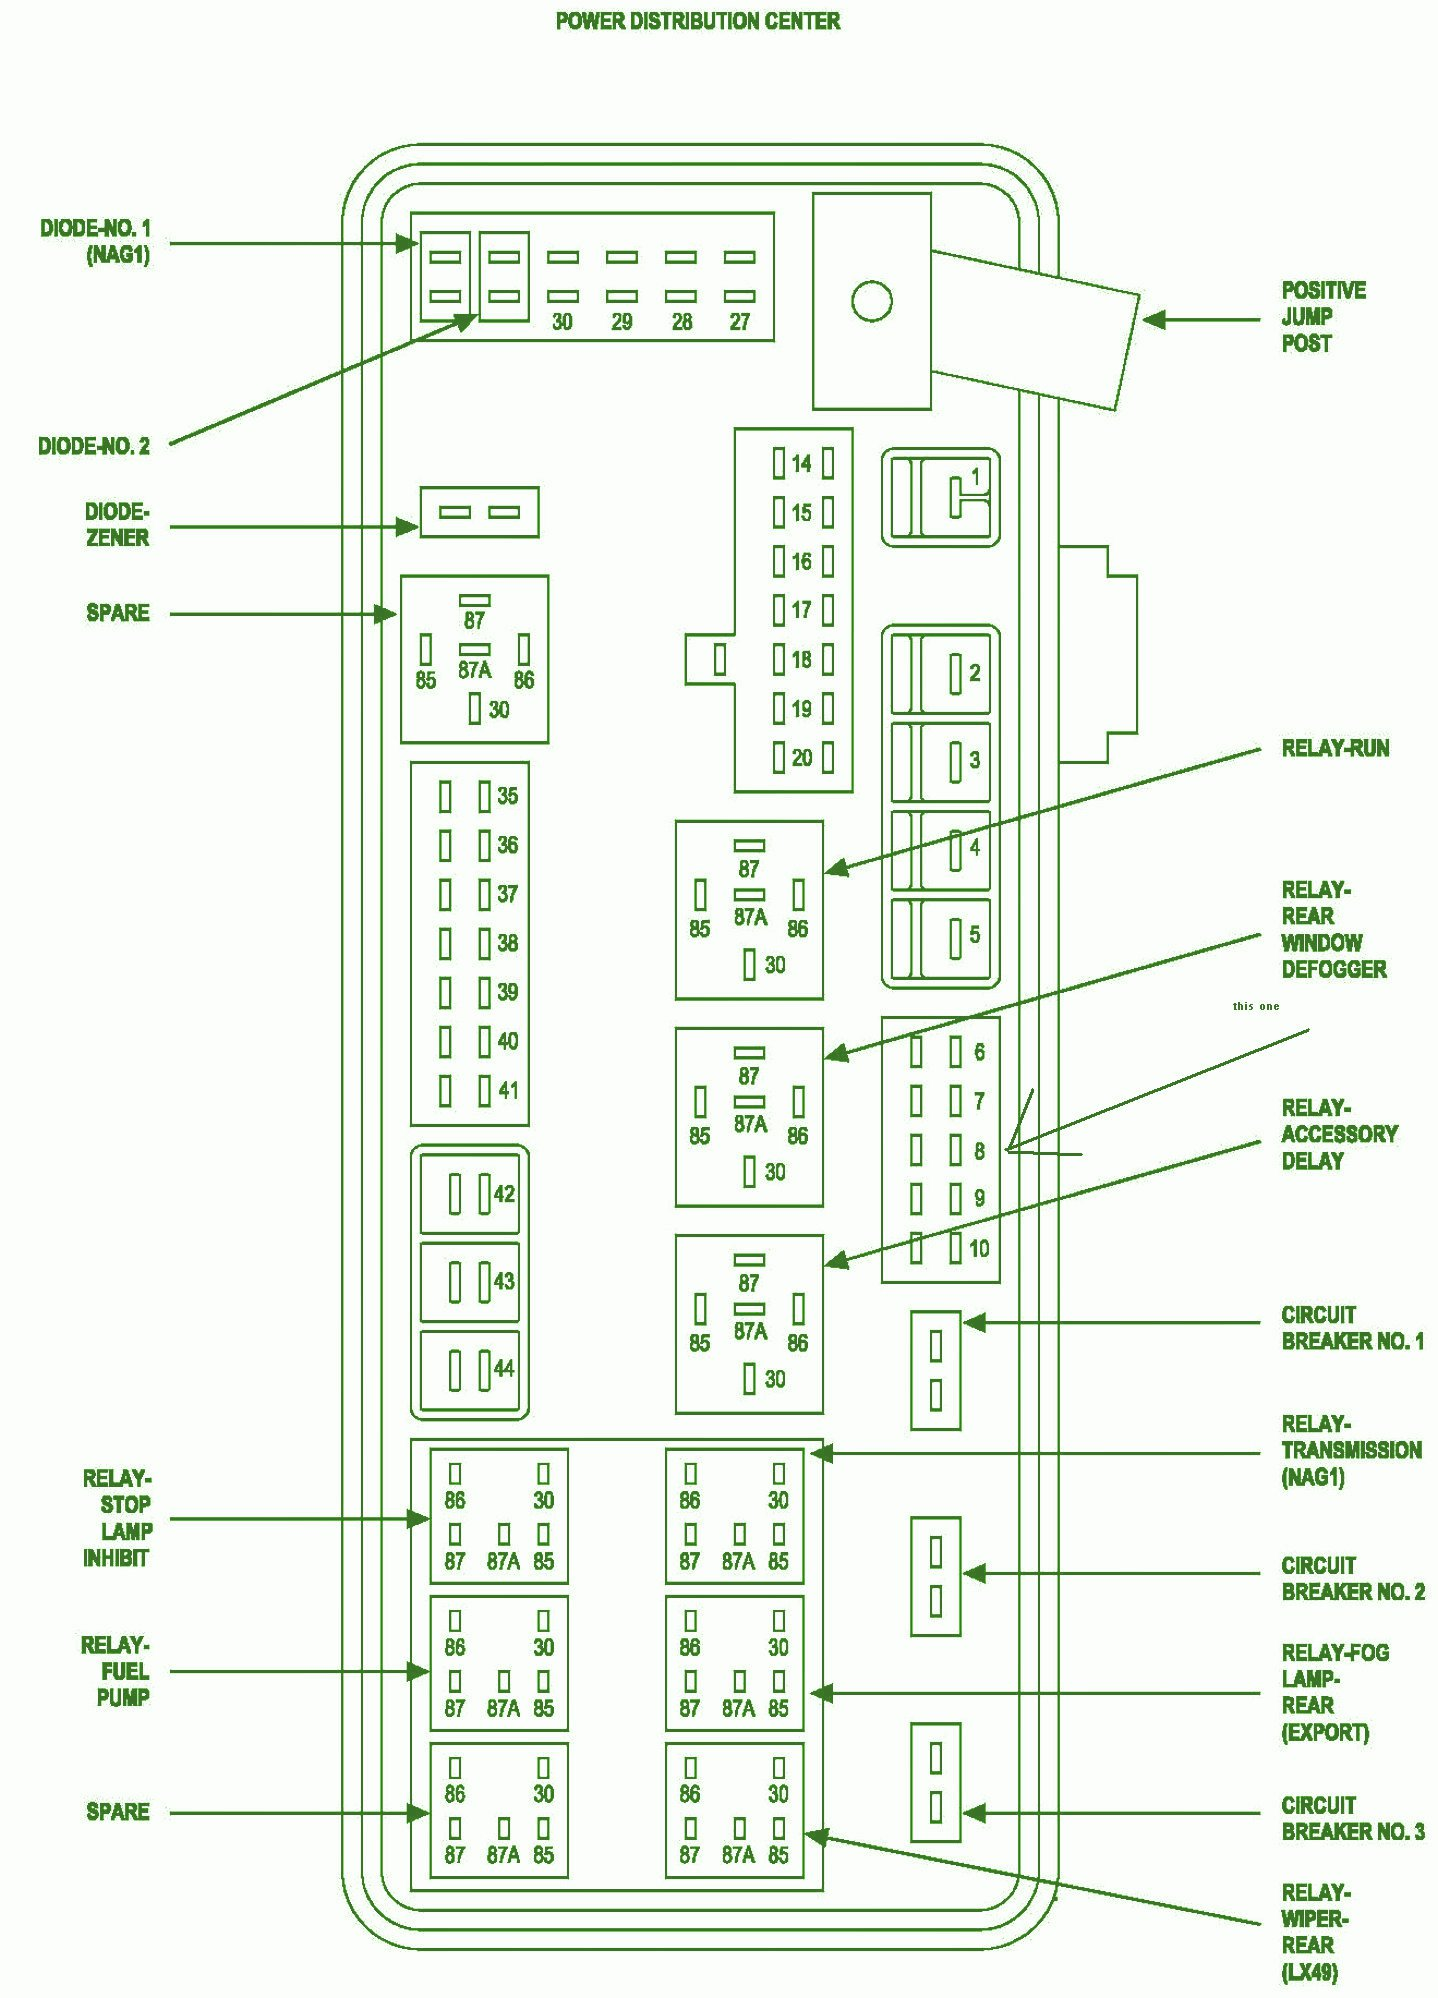 2009 dodge magnum under the hood fuse box diagram